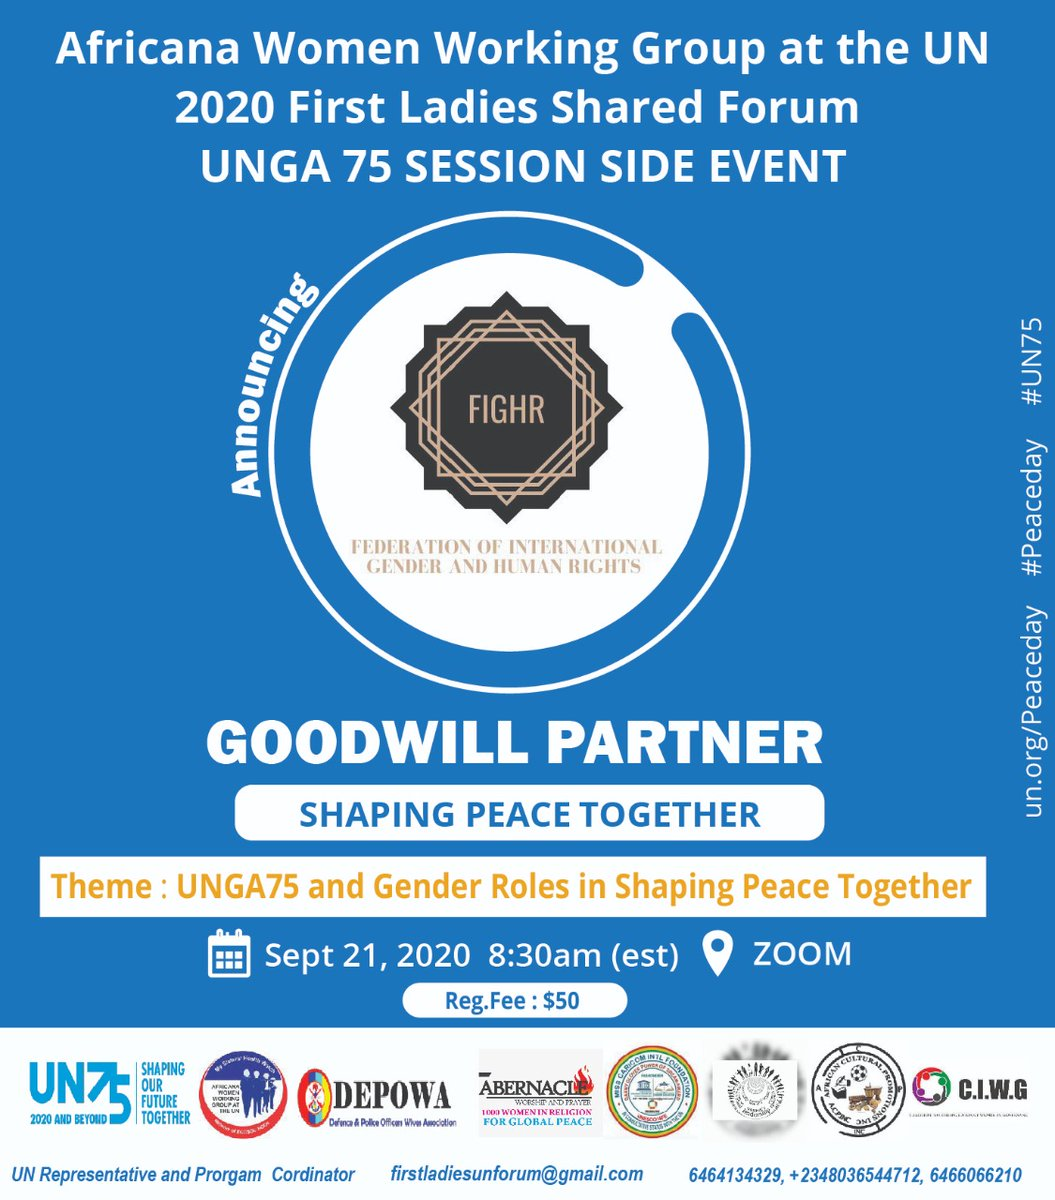 We are proud to share the Federation of International Gender and Human Rights (FIGHR), as GOODWILL PARTNERS at Africana Women Working Group at the UN 2020, first Ladies Shared Forum UNGA 75 Session Side Event.  Registration Link: https://t.co/RhJkIvuOVH #UN75 #UNPeacekeeping #un https://t.co/JYJKZtHumq